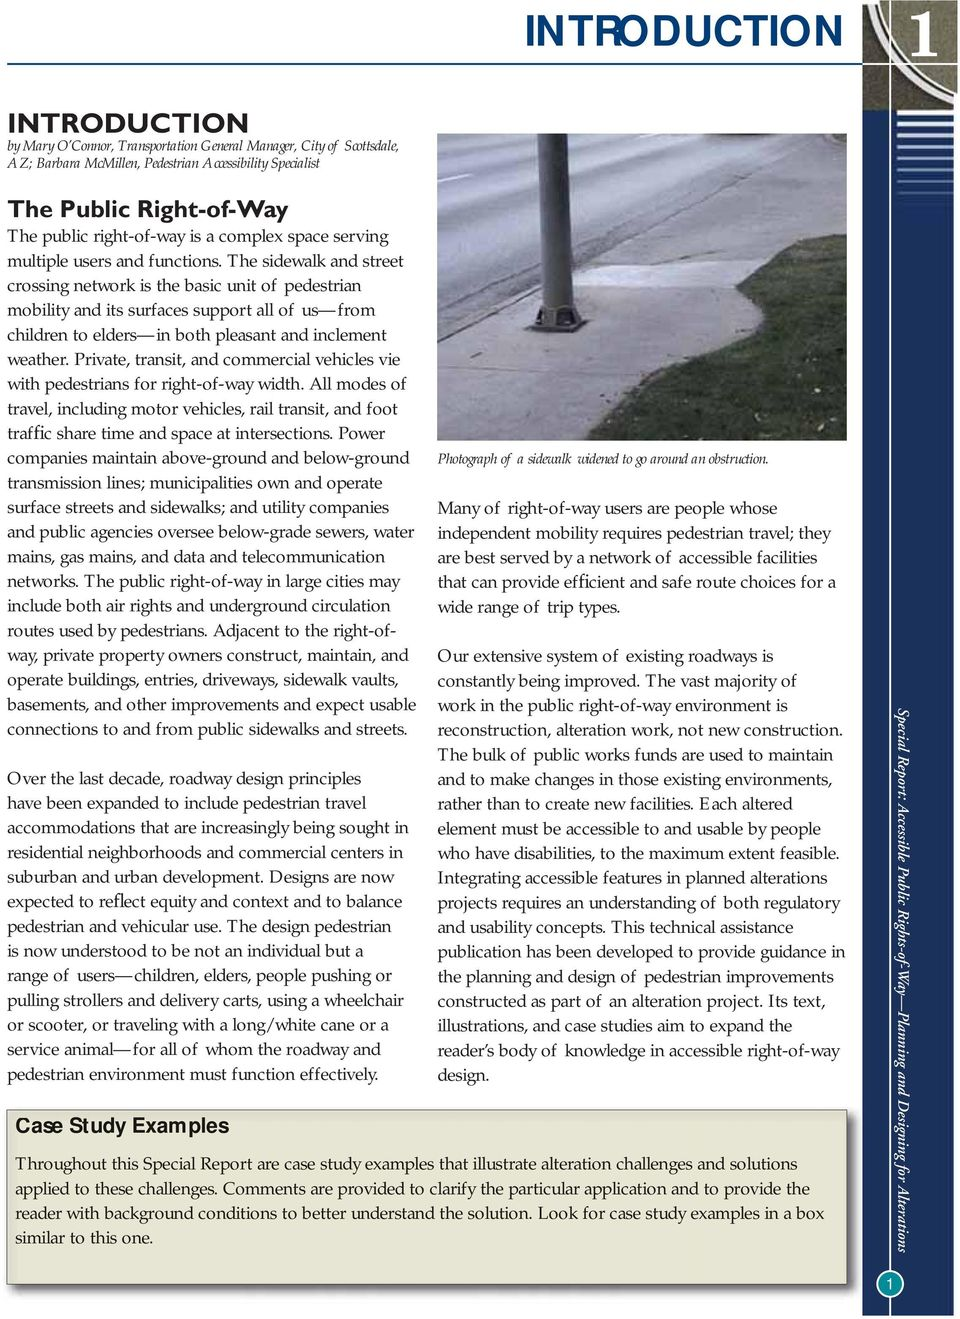 The sidewalk and street crossing network is the basic unit of pedestrian mobility and its surfaces support all of us from children to elders in both pleasant and inclement weather.